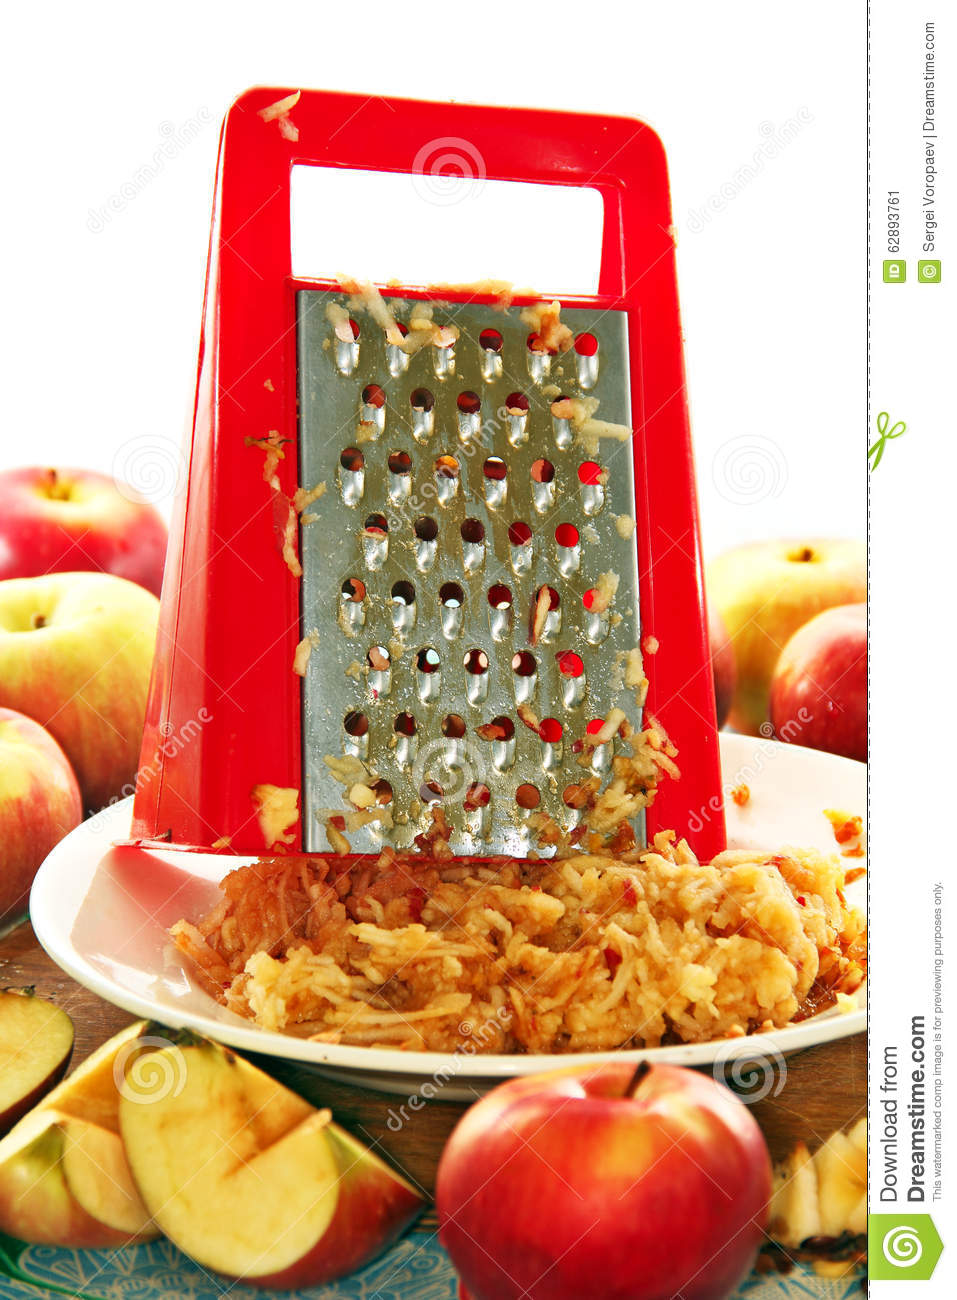 Kitchen Grater And Apples. Stock Photo.